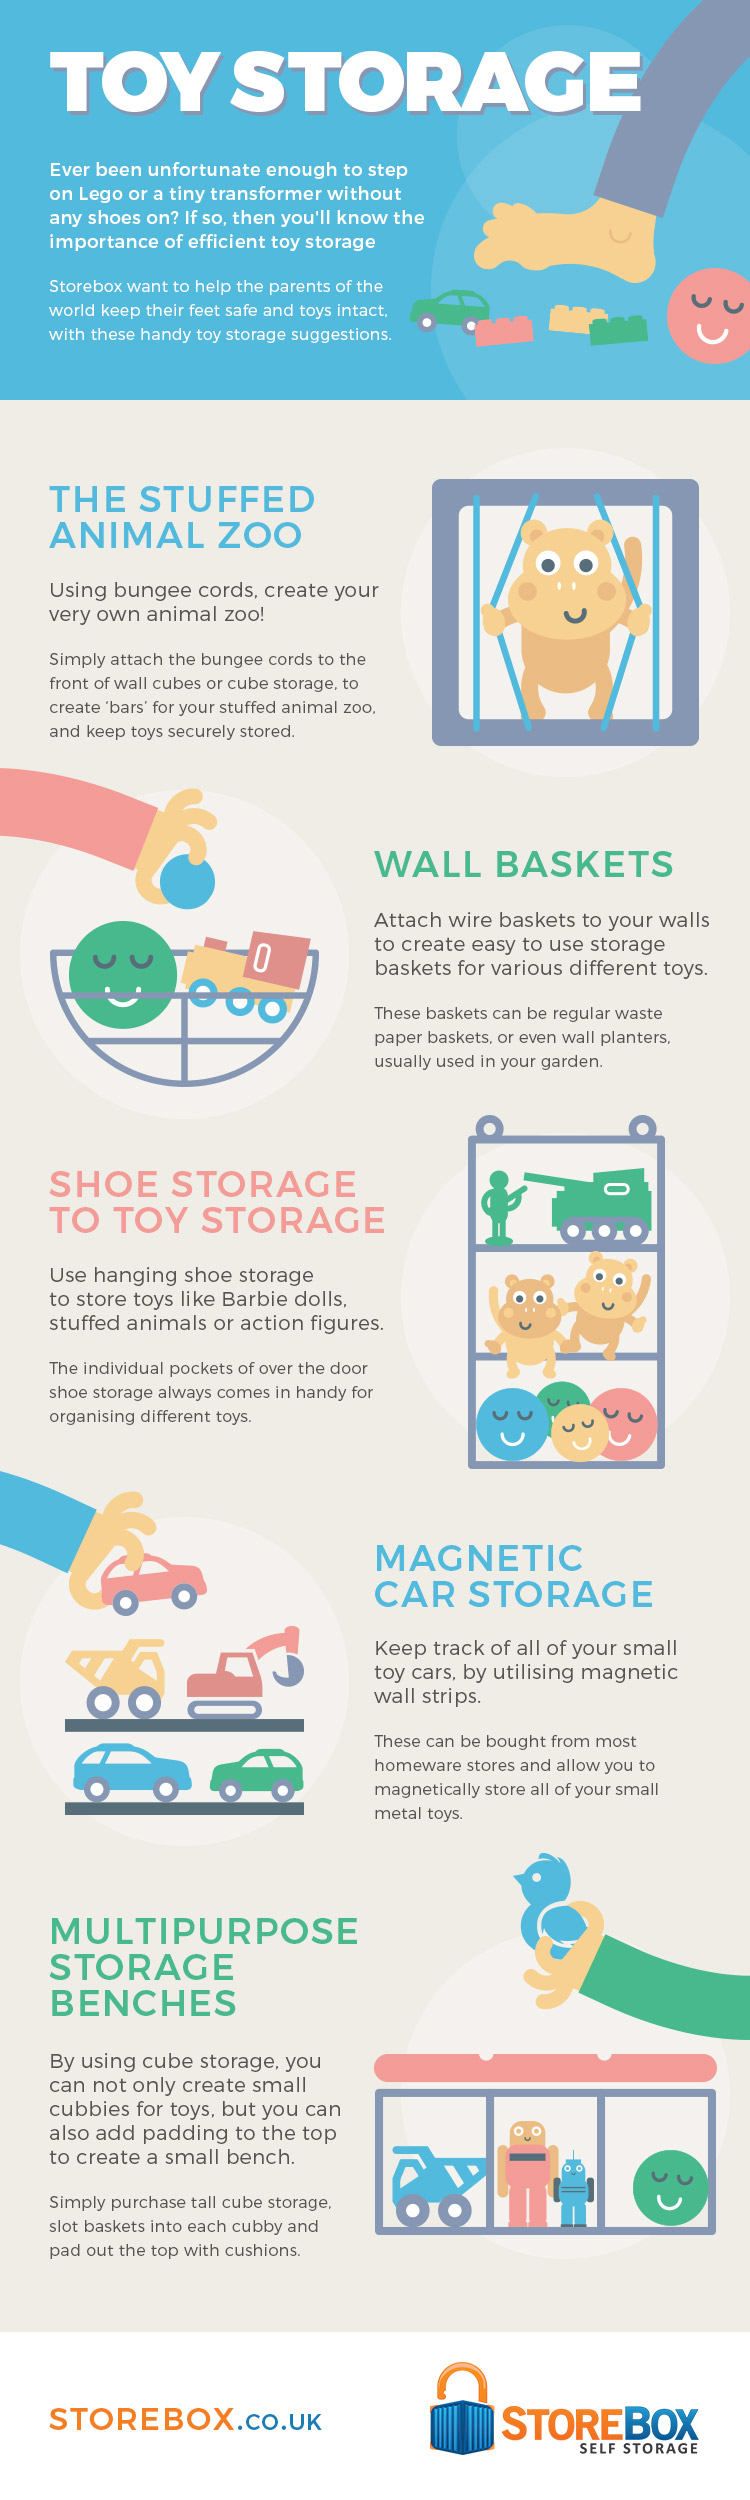 How To DIY Your Way To Amazing Toy Storage The Oliver\\\'s Madhouse